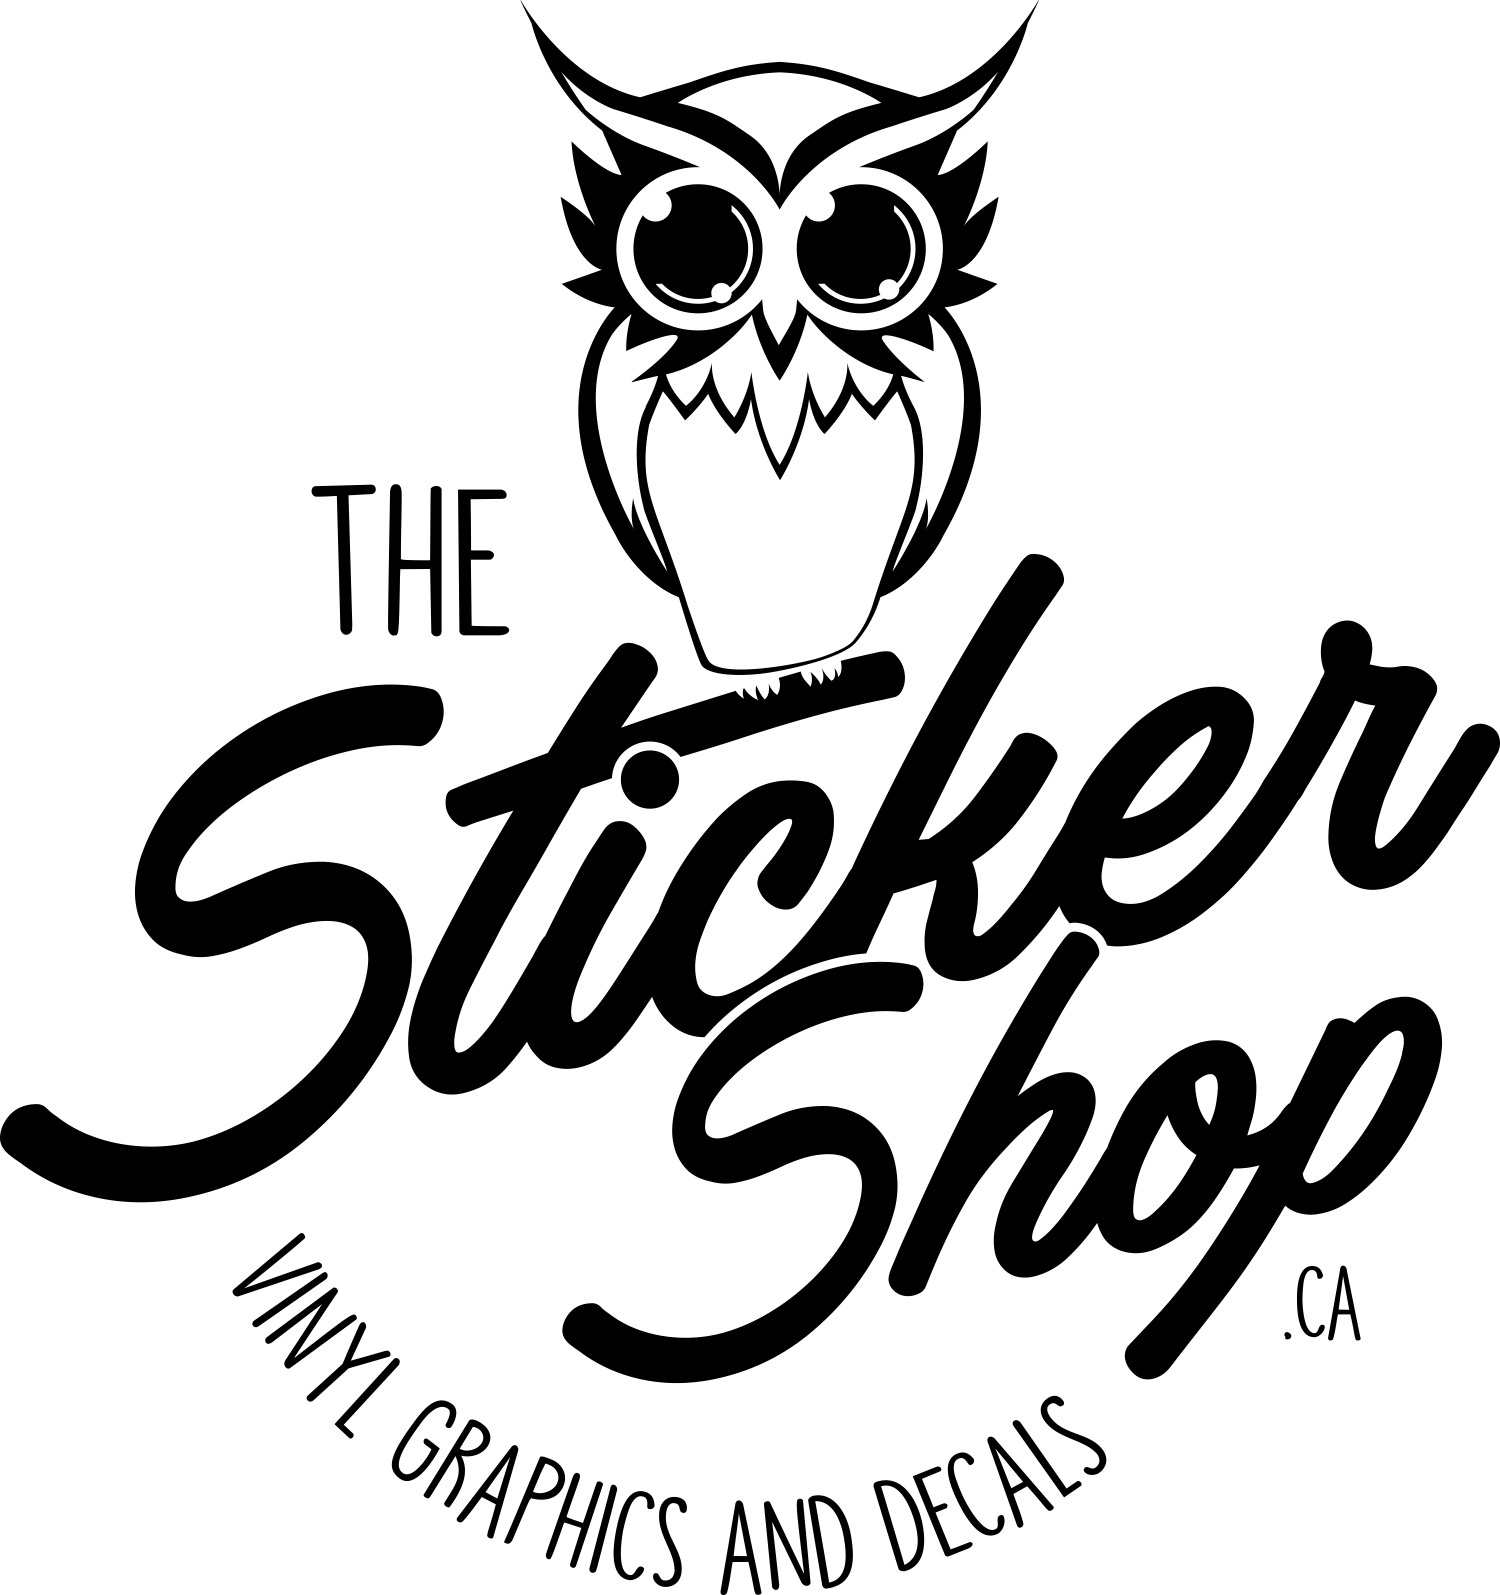 Noir drawing owl. Z off road decal